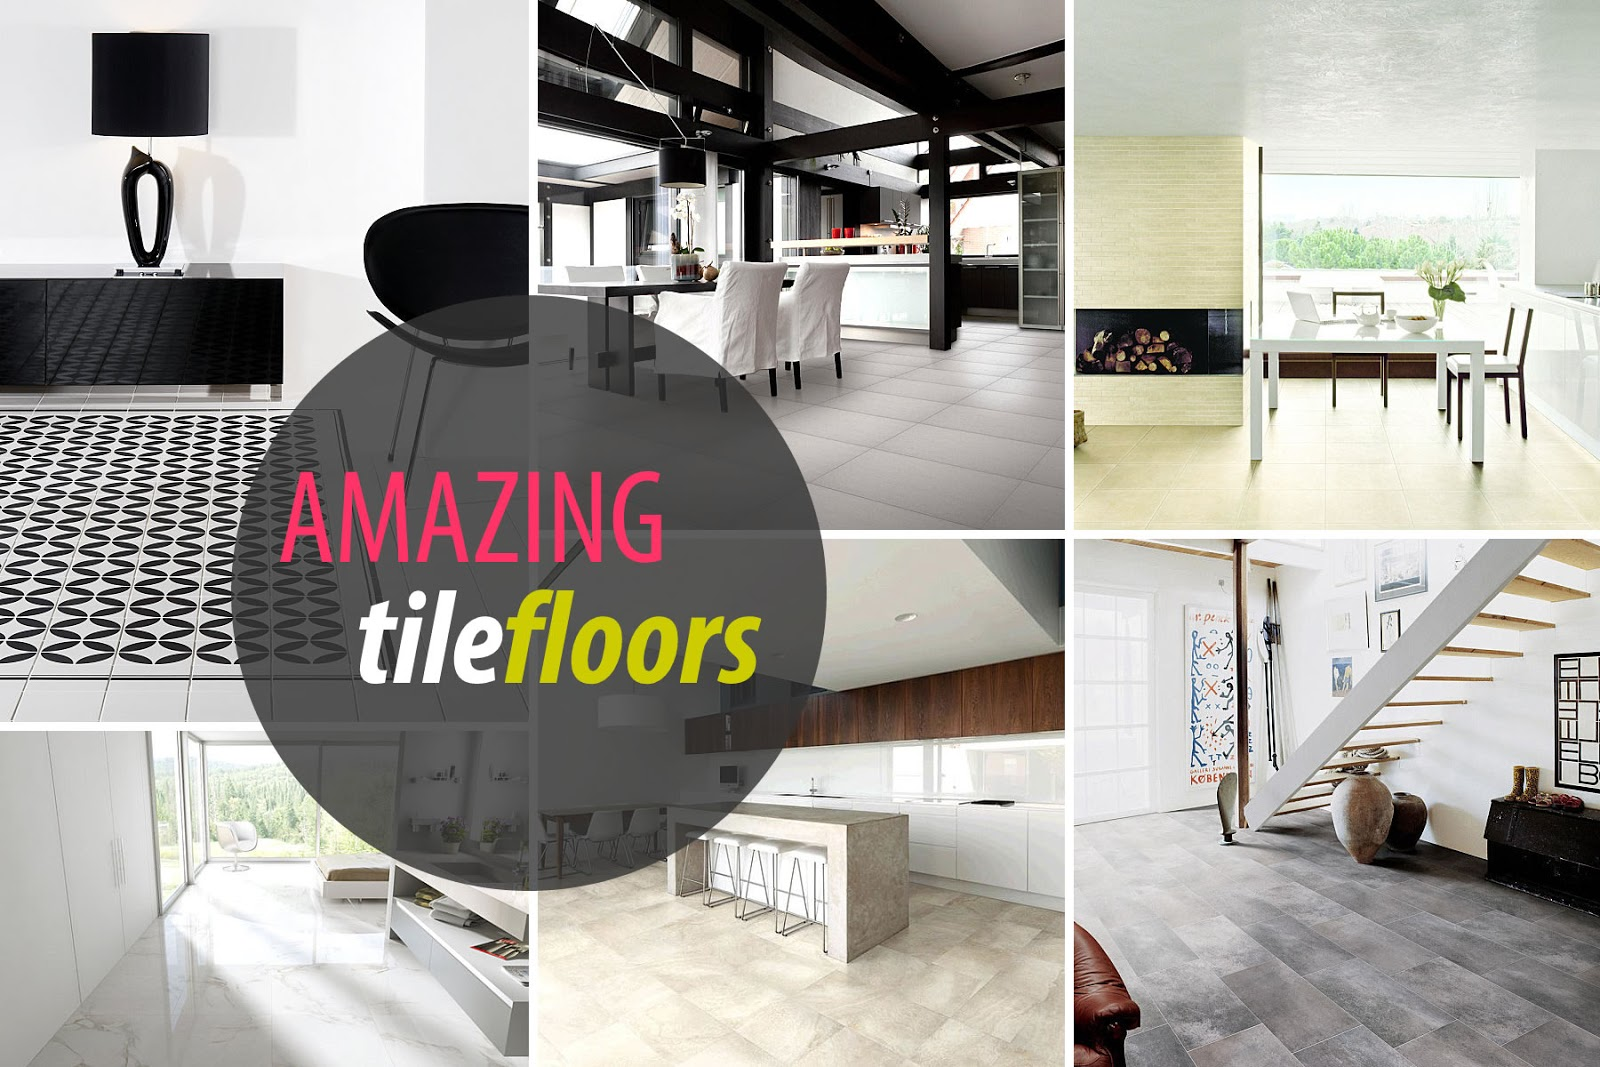 Porcelain Tile, Ceramic Tile, Patterned Tile, Marble Tileu2026 The  Possibilities Are Endless! In Fact, More And More Homeowners Are Choosing  Tile Over Carpeting ...